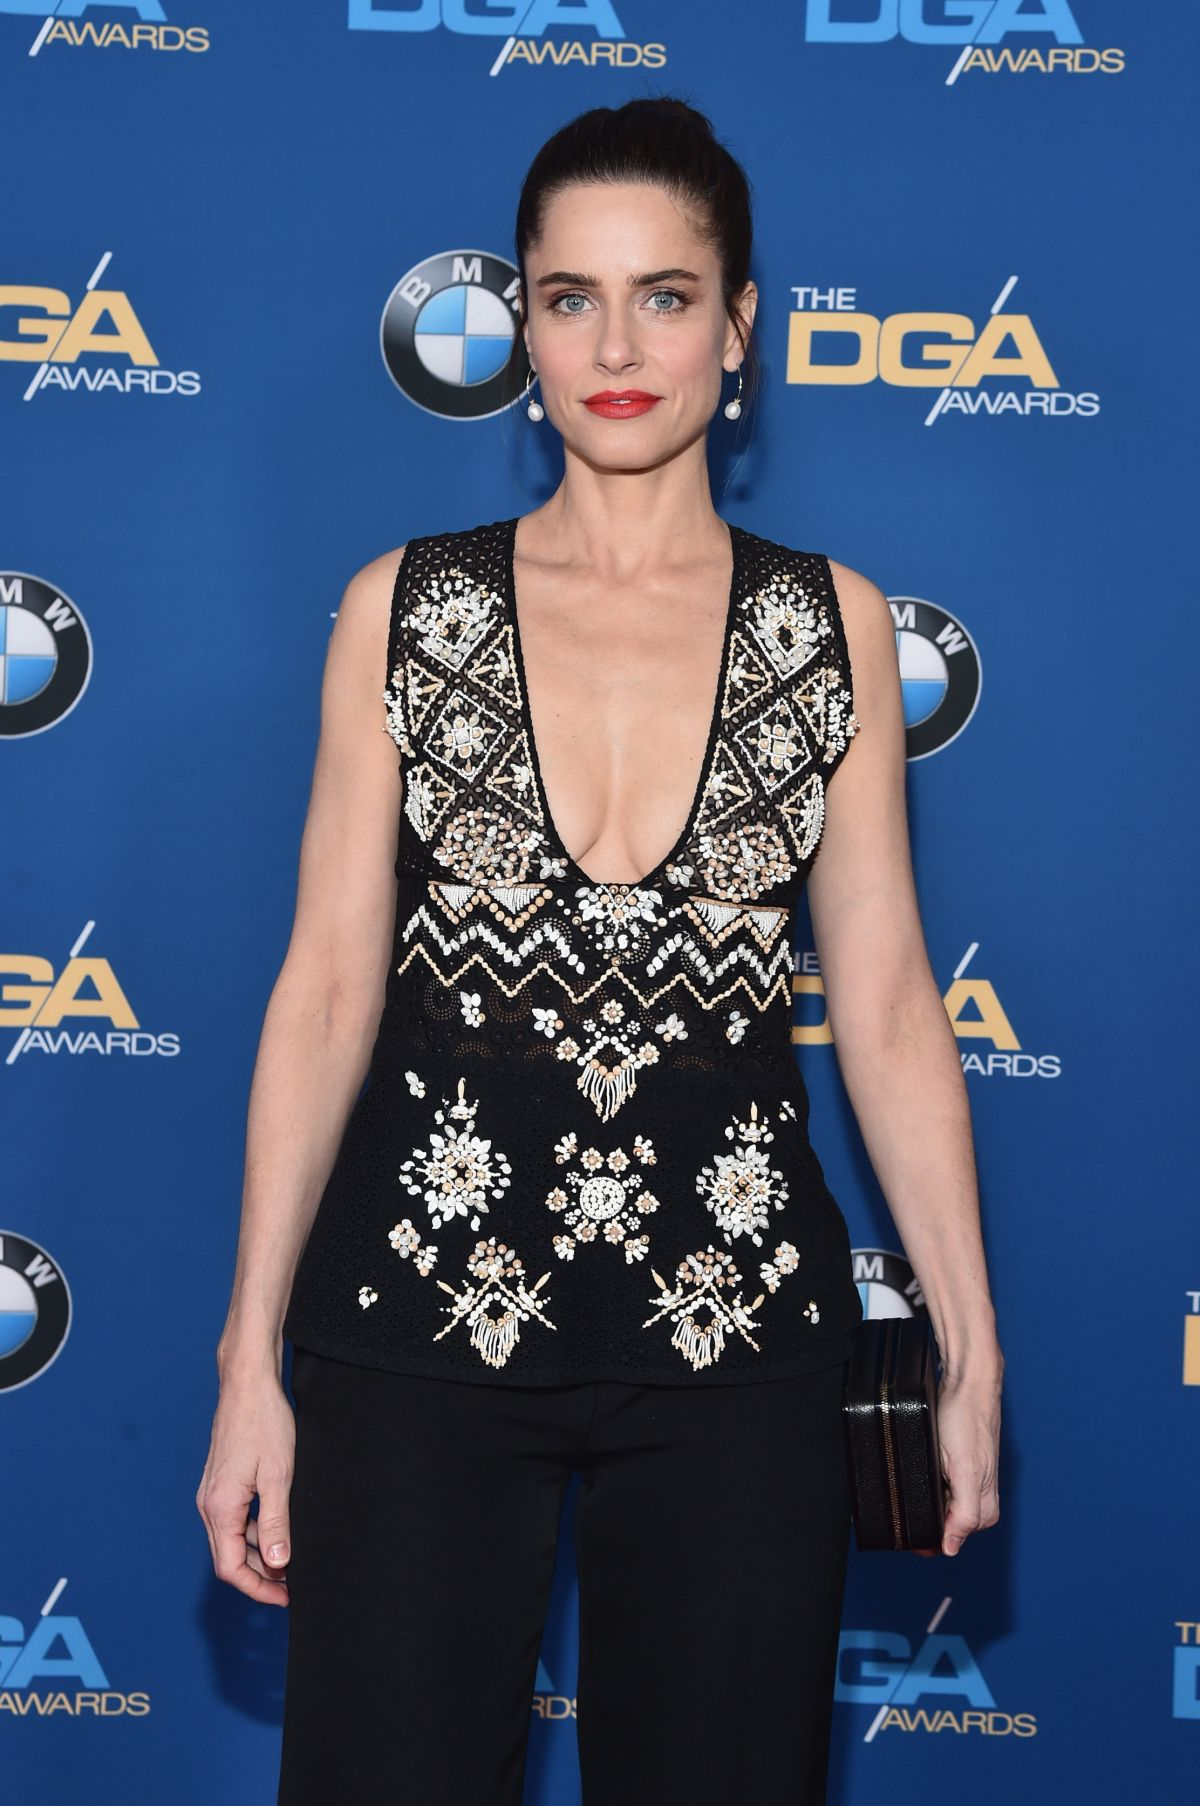 AMANDA PEET at 68th Annual Directors Guild of America Awards in Los Angeles 02/06/2016